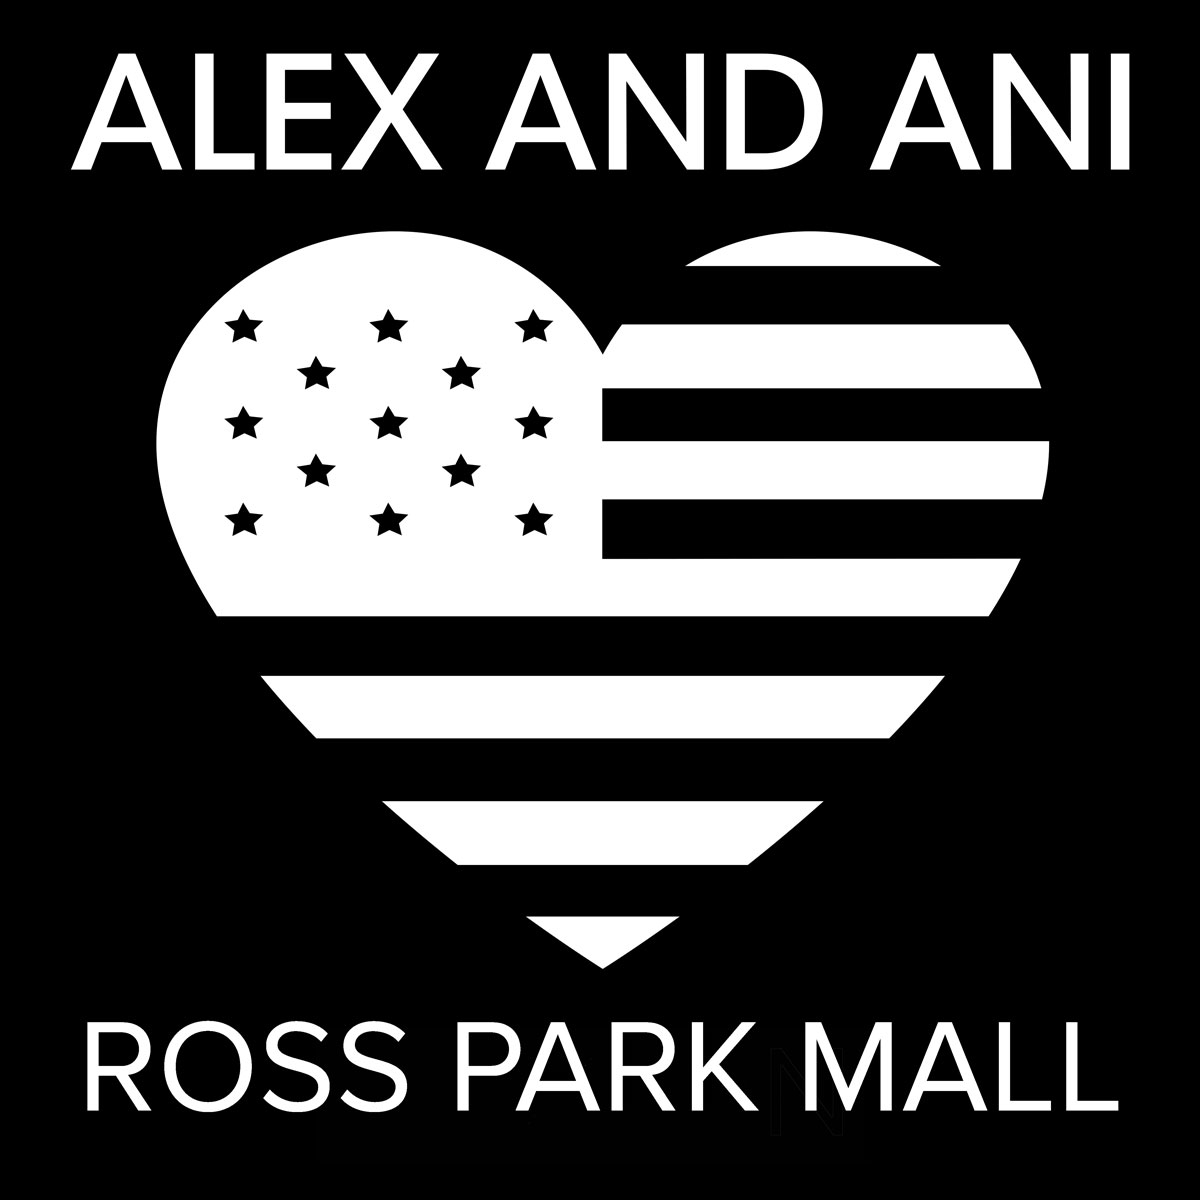 ALEX AND ANI - Pittsburgh, PA - Accessories